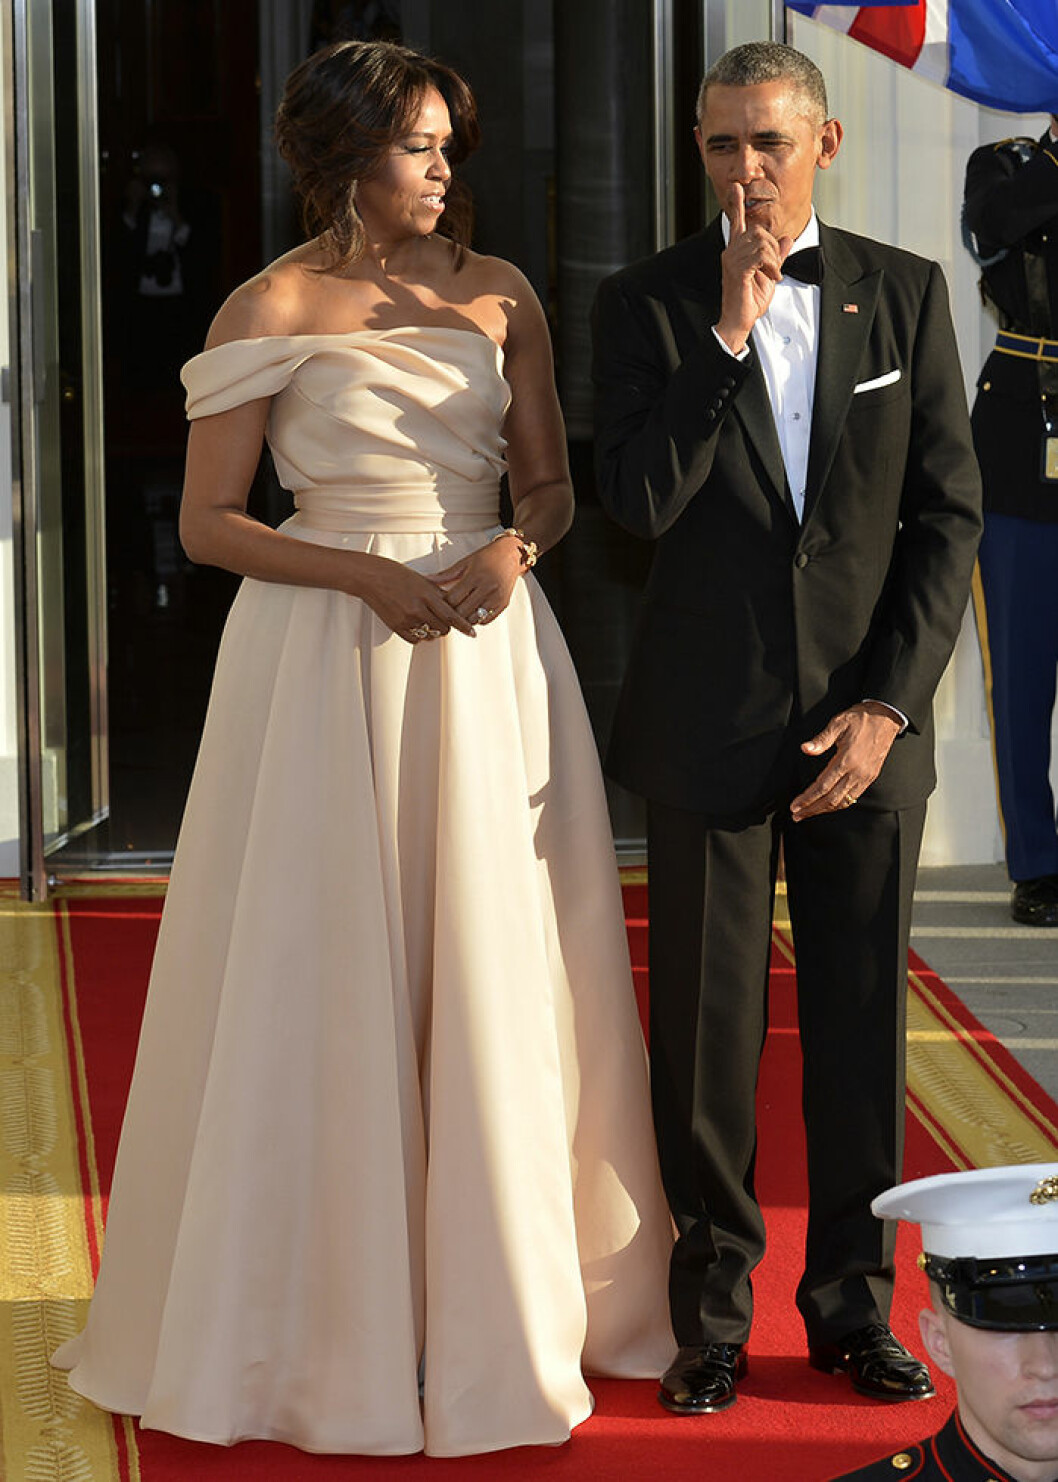 U.S. President Barack Obama gestures a whisper as he and First Lady Michelle Obama await the arrival of leaders from the five Nordic countries for a State Dinner WEARING NAEEM KHAN